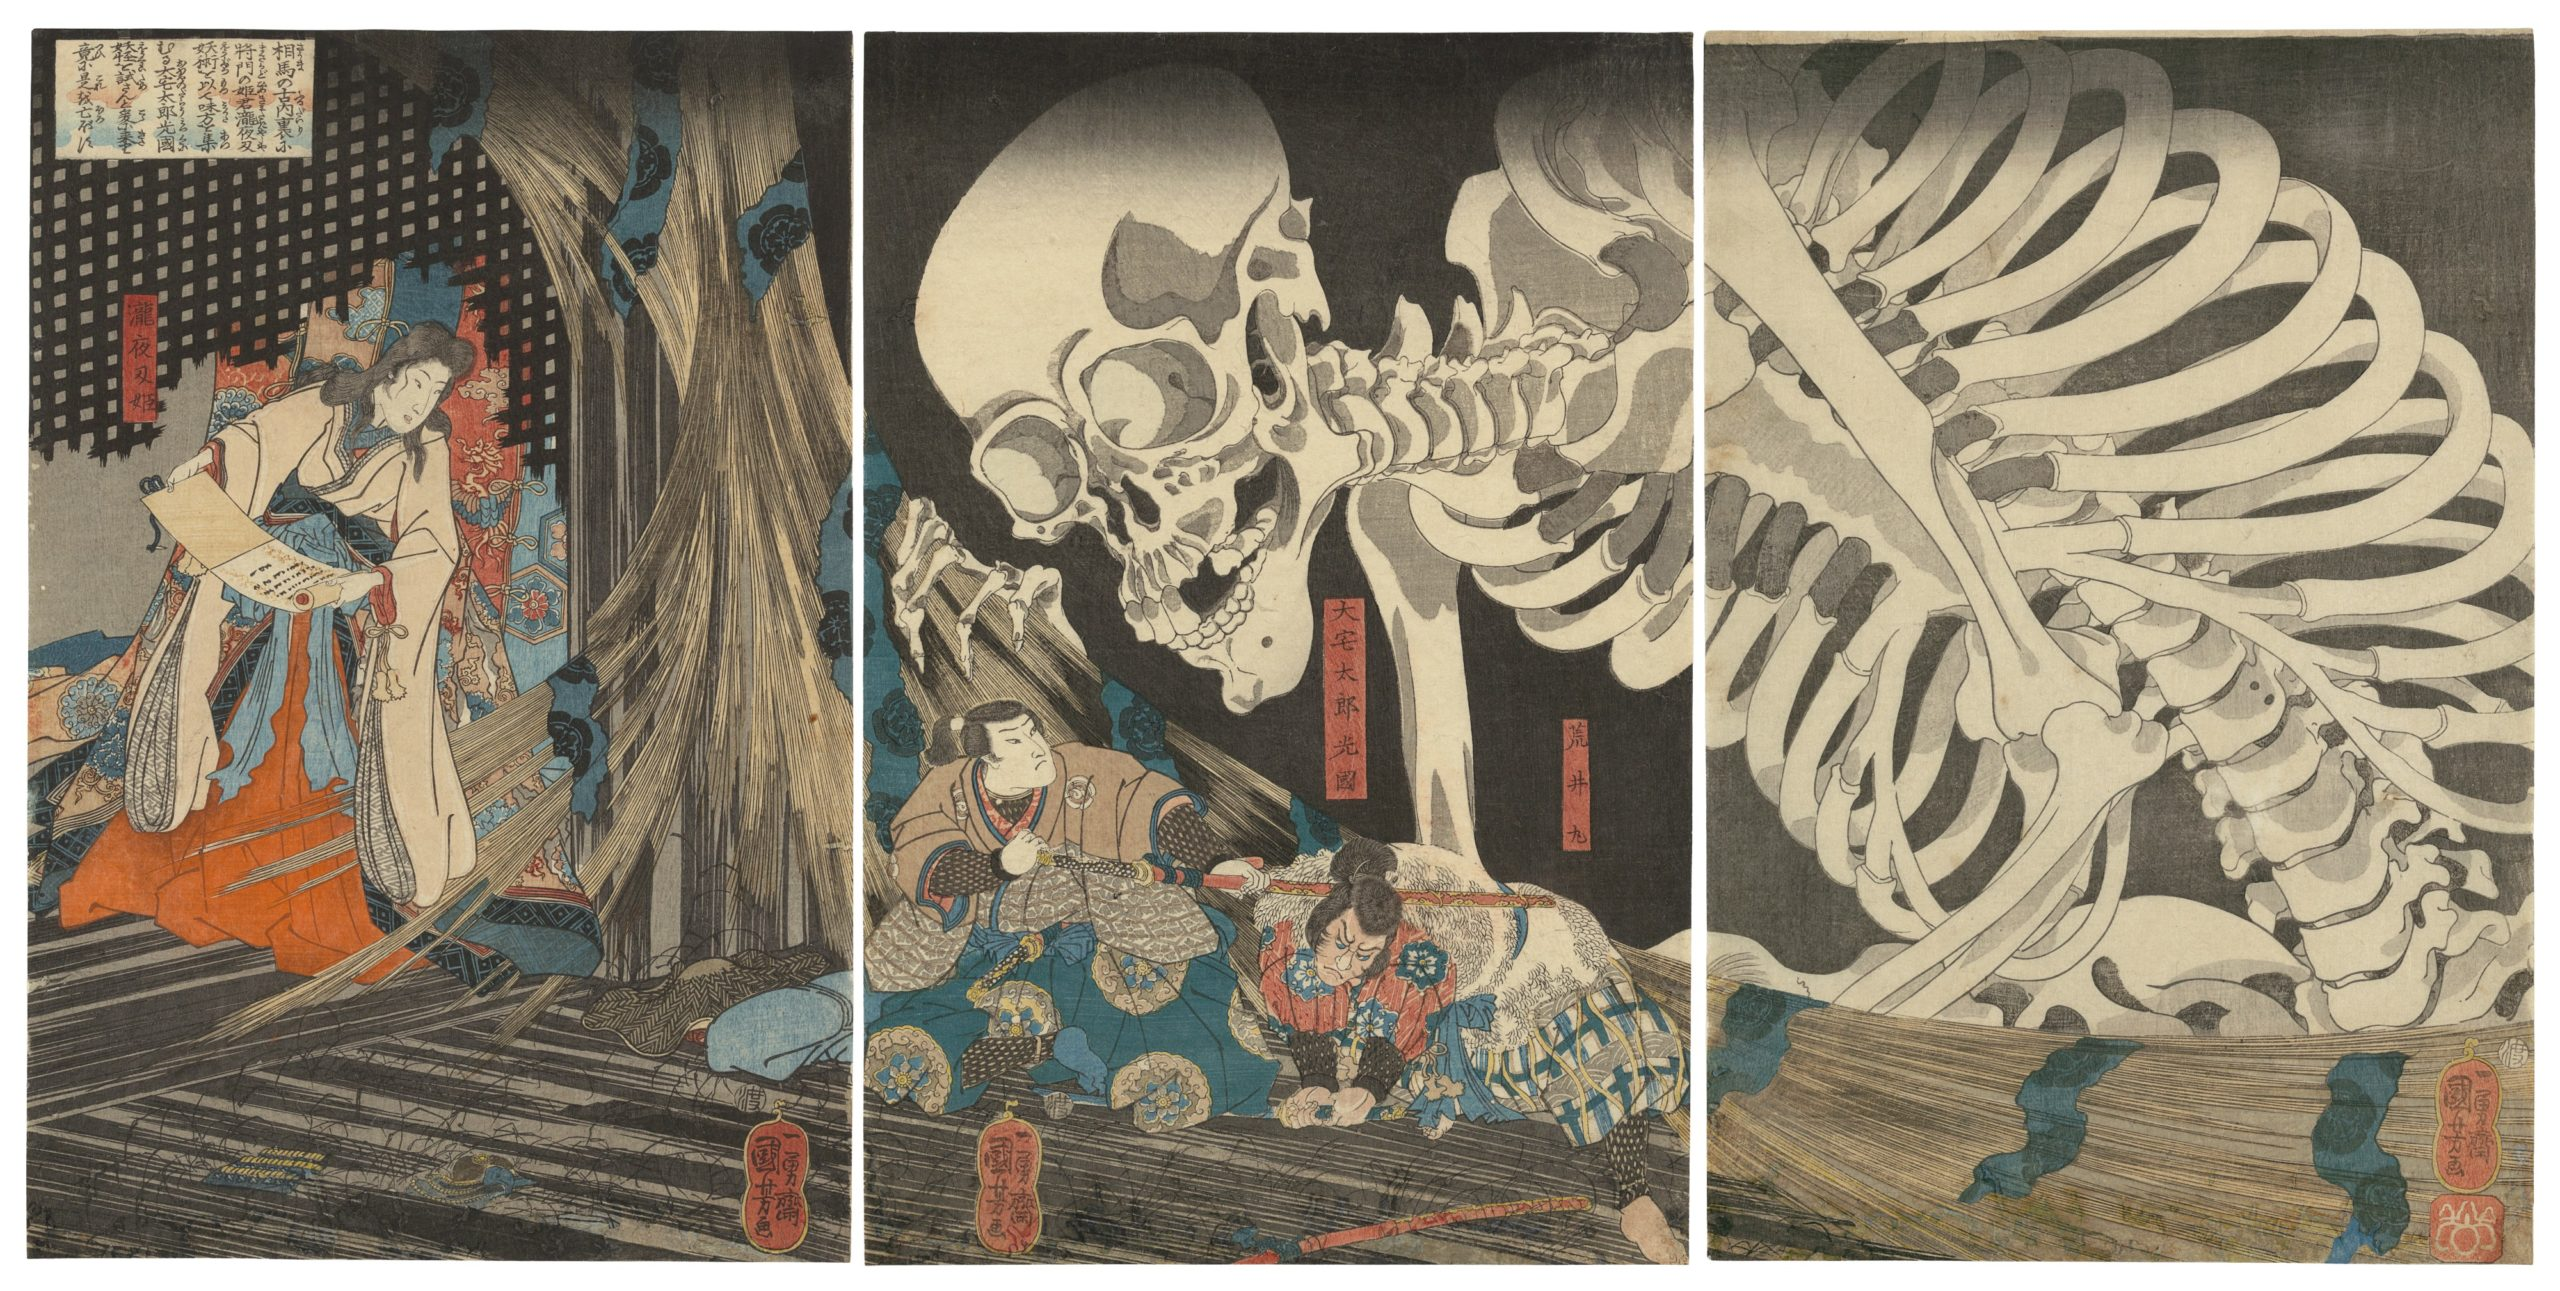 UTAGAWA KUNIYOSHI (1797-1861) Mitsukuni defying the skeleton spectre conjured up by Princess Takiyasha, Woodblock print, triptych, each sheet signed Ichiyusai Kuniyoshi ga, Publisher's mark Hachi, circa 1845-46